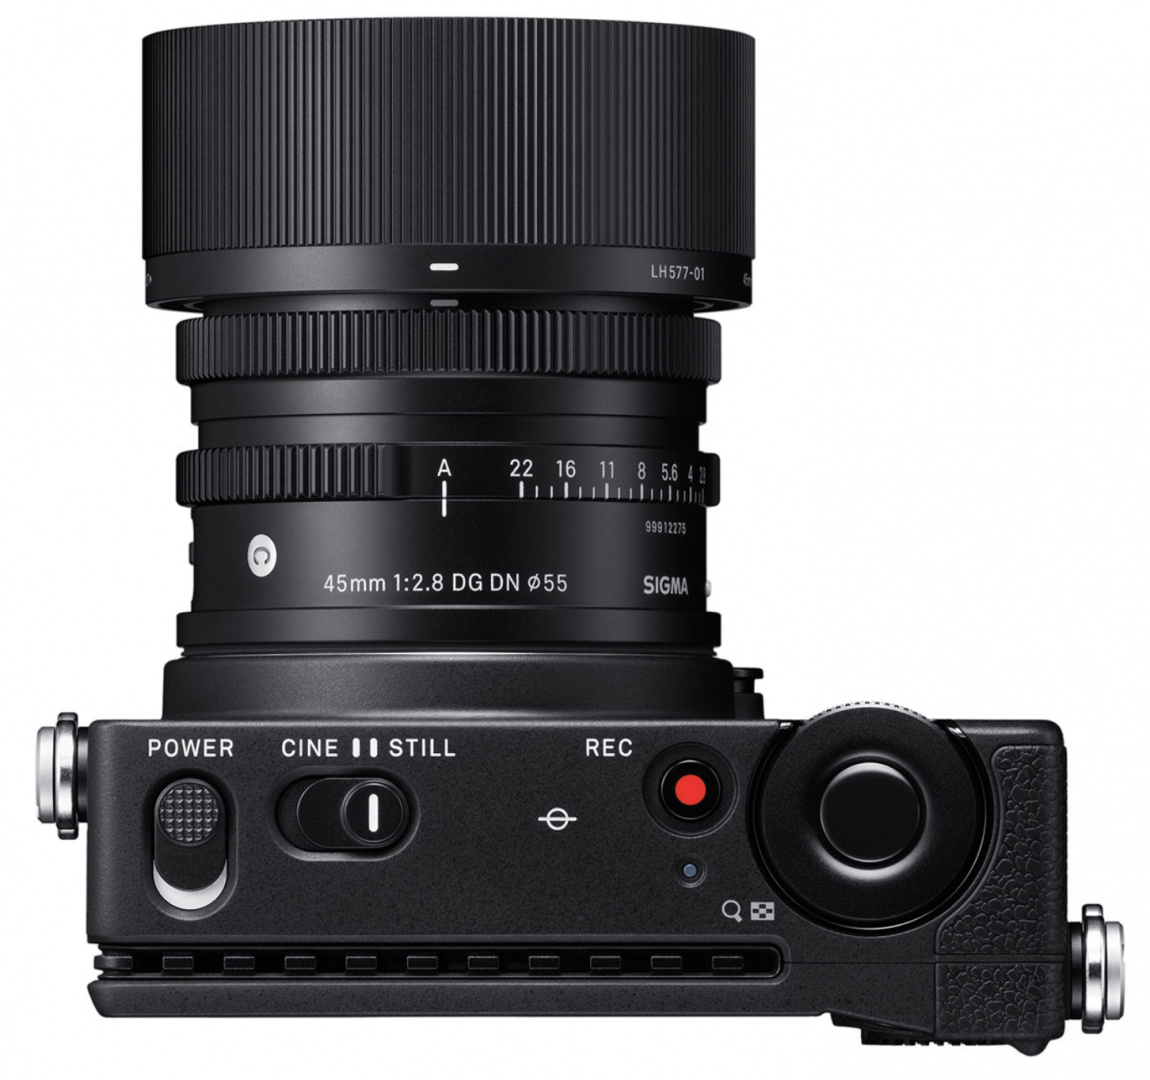 Sigma's cine-centric fp will cost less than expected. The 45mm f/2.8 lens seen here has already been a hit with L-mount stills photographers because of its small size and realistic price